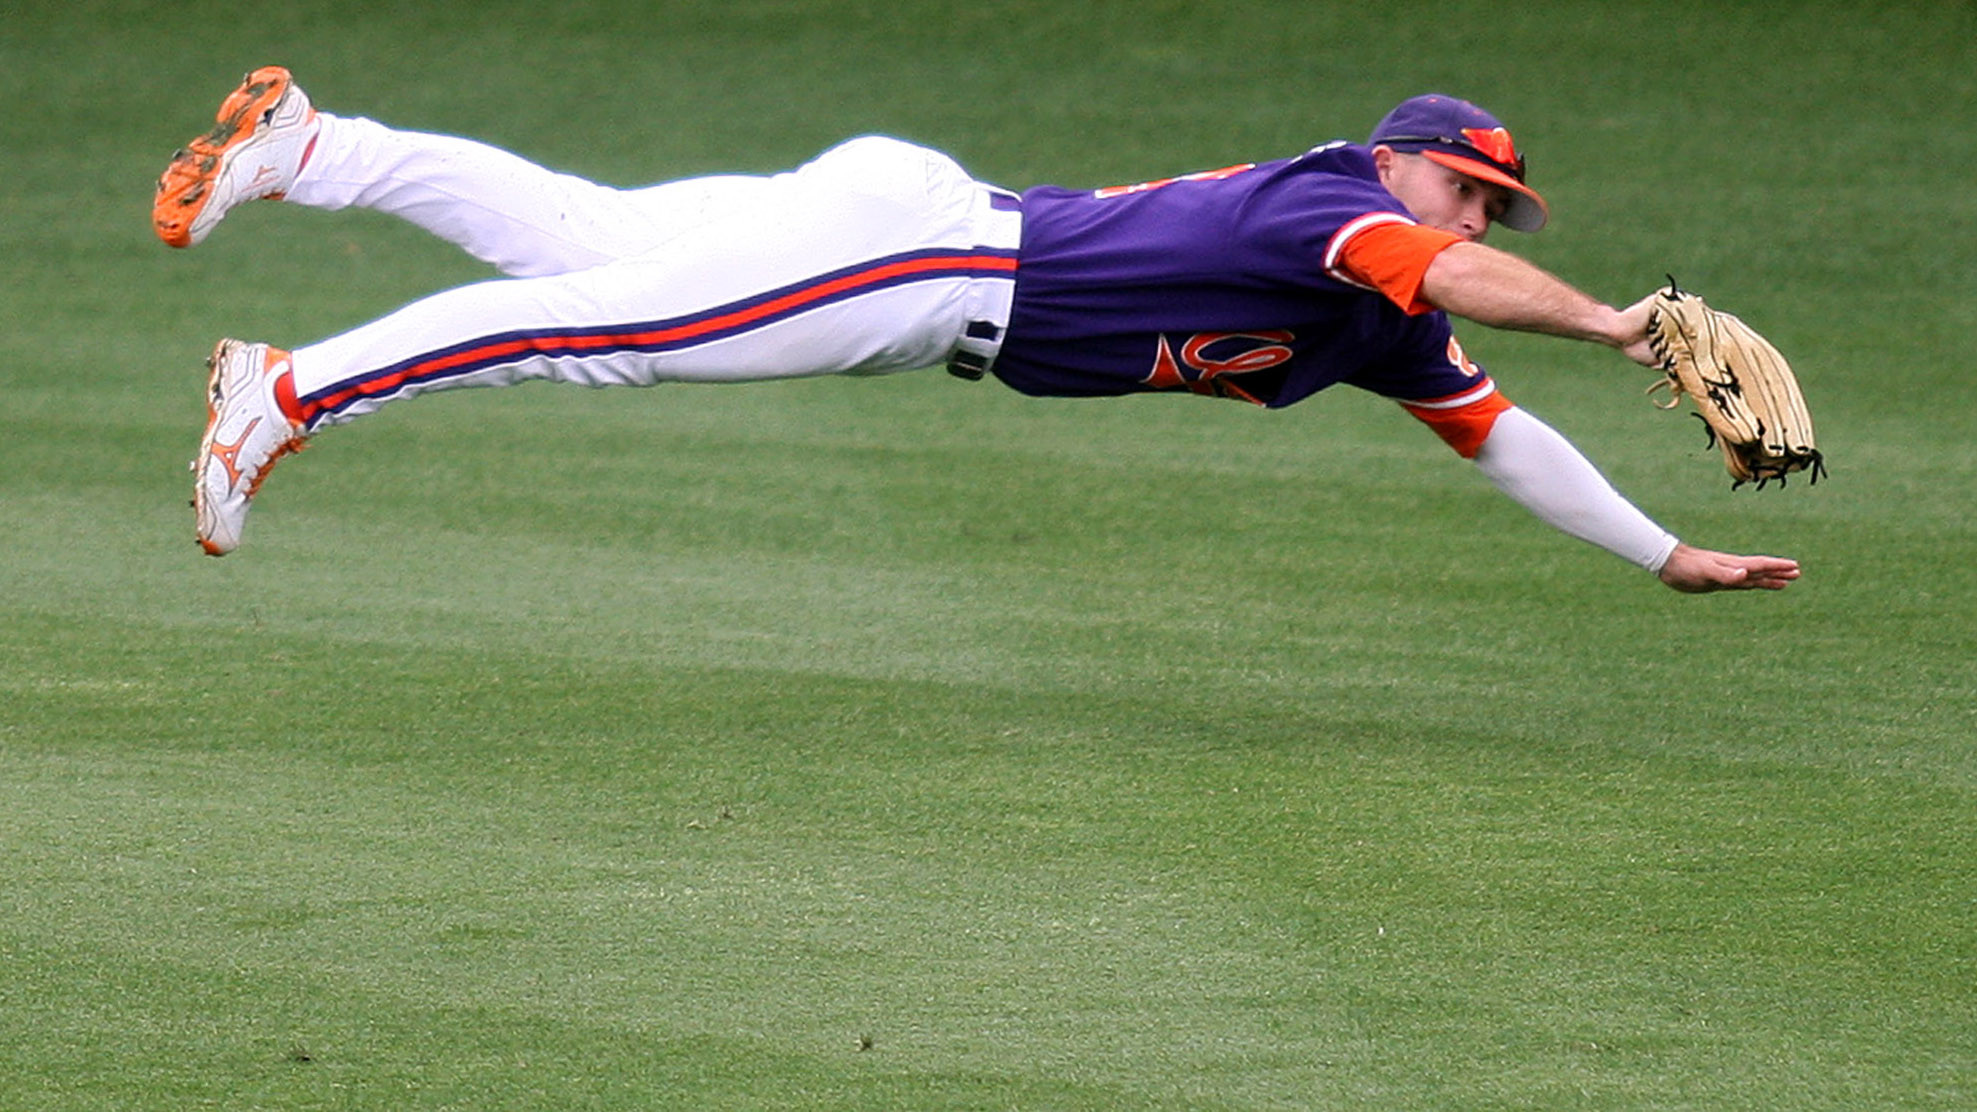 Five Tigers Named to 2013 All-ACC Academic Baseball Team